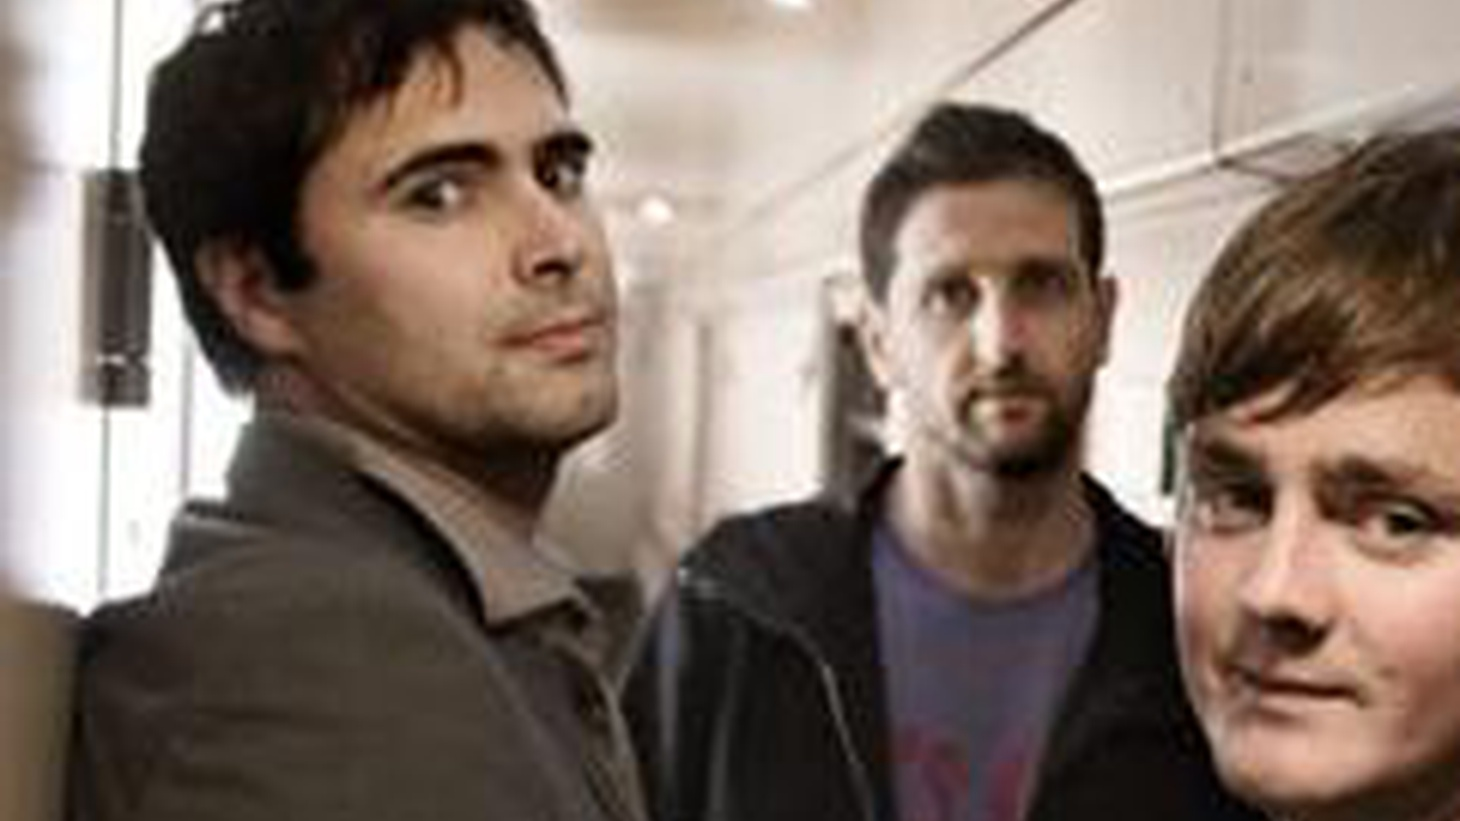 Rock trio, Keane, return to perform new songs on Morning Becomes Eclectic with host Jason Bentley in the 11 o'clock hour.